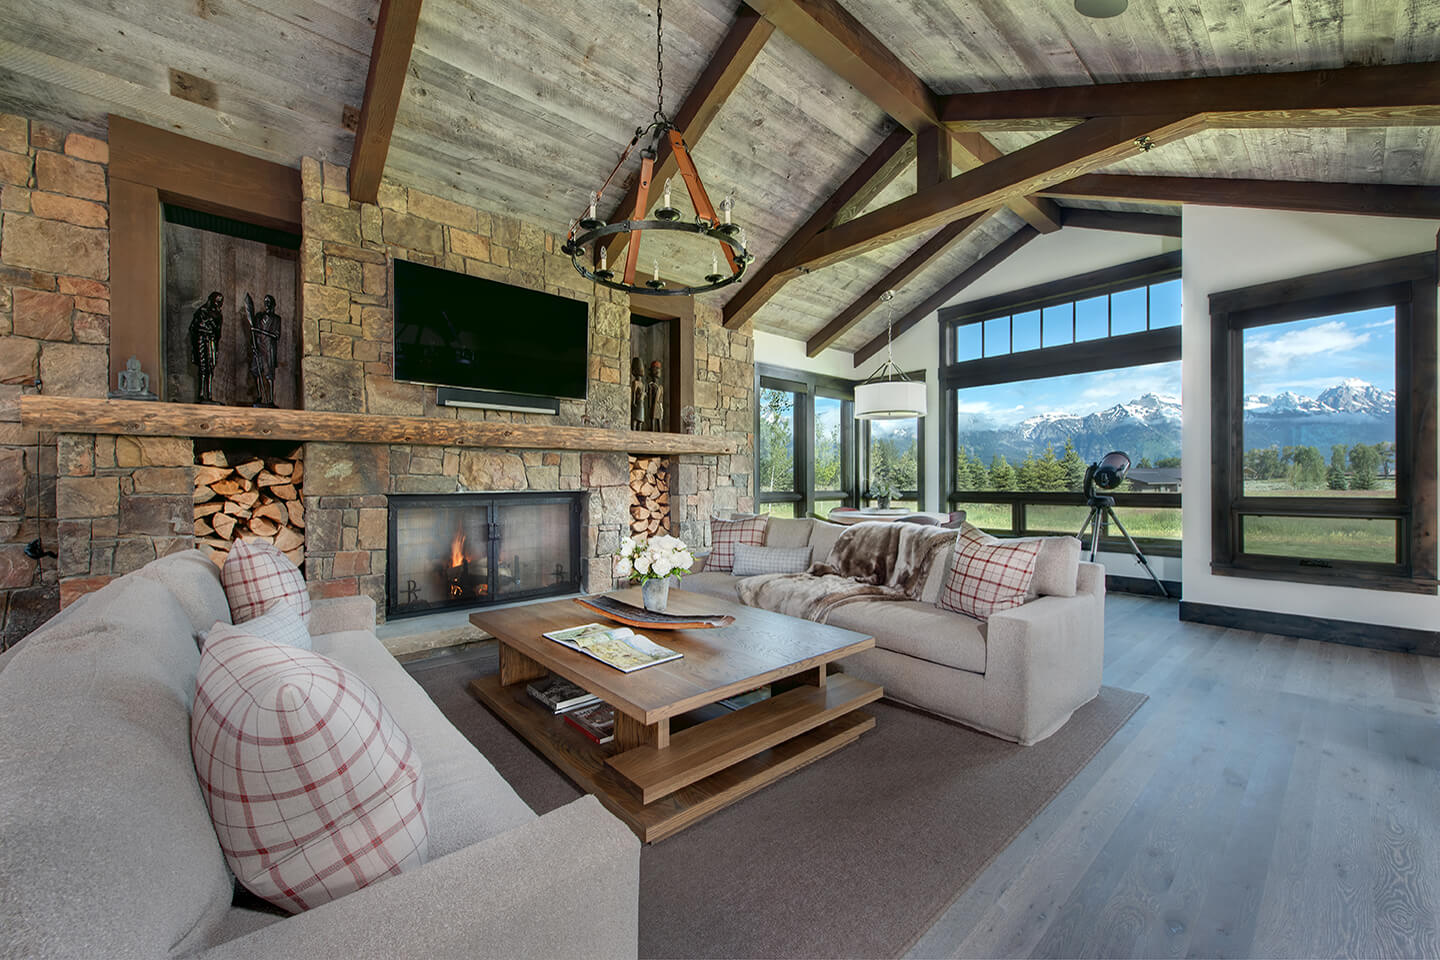 Vaulted reclaimed wood ceiling in living room